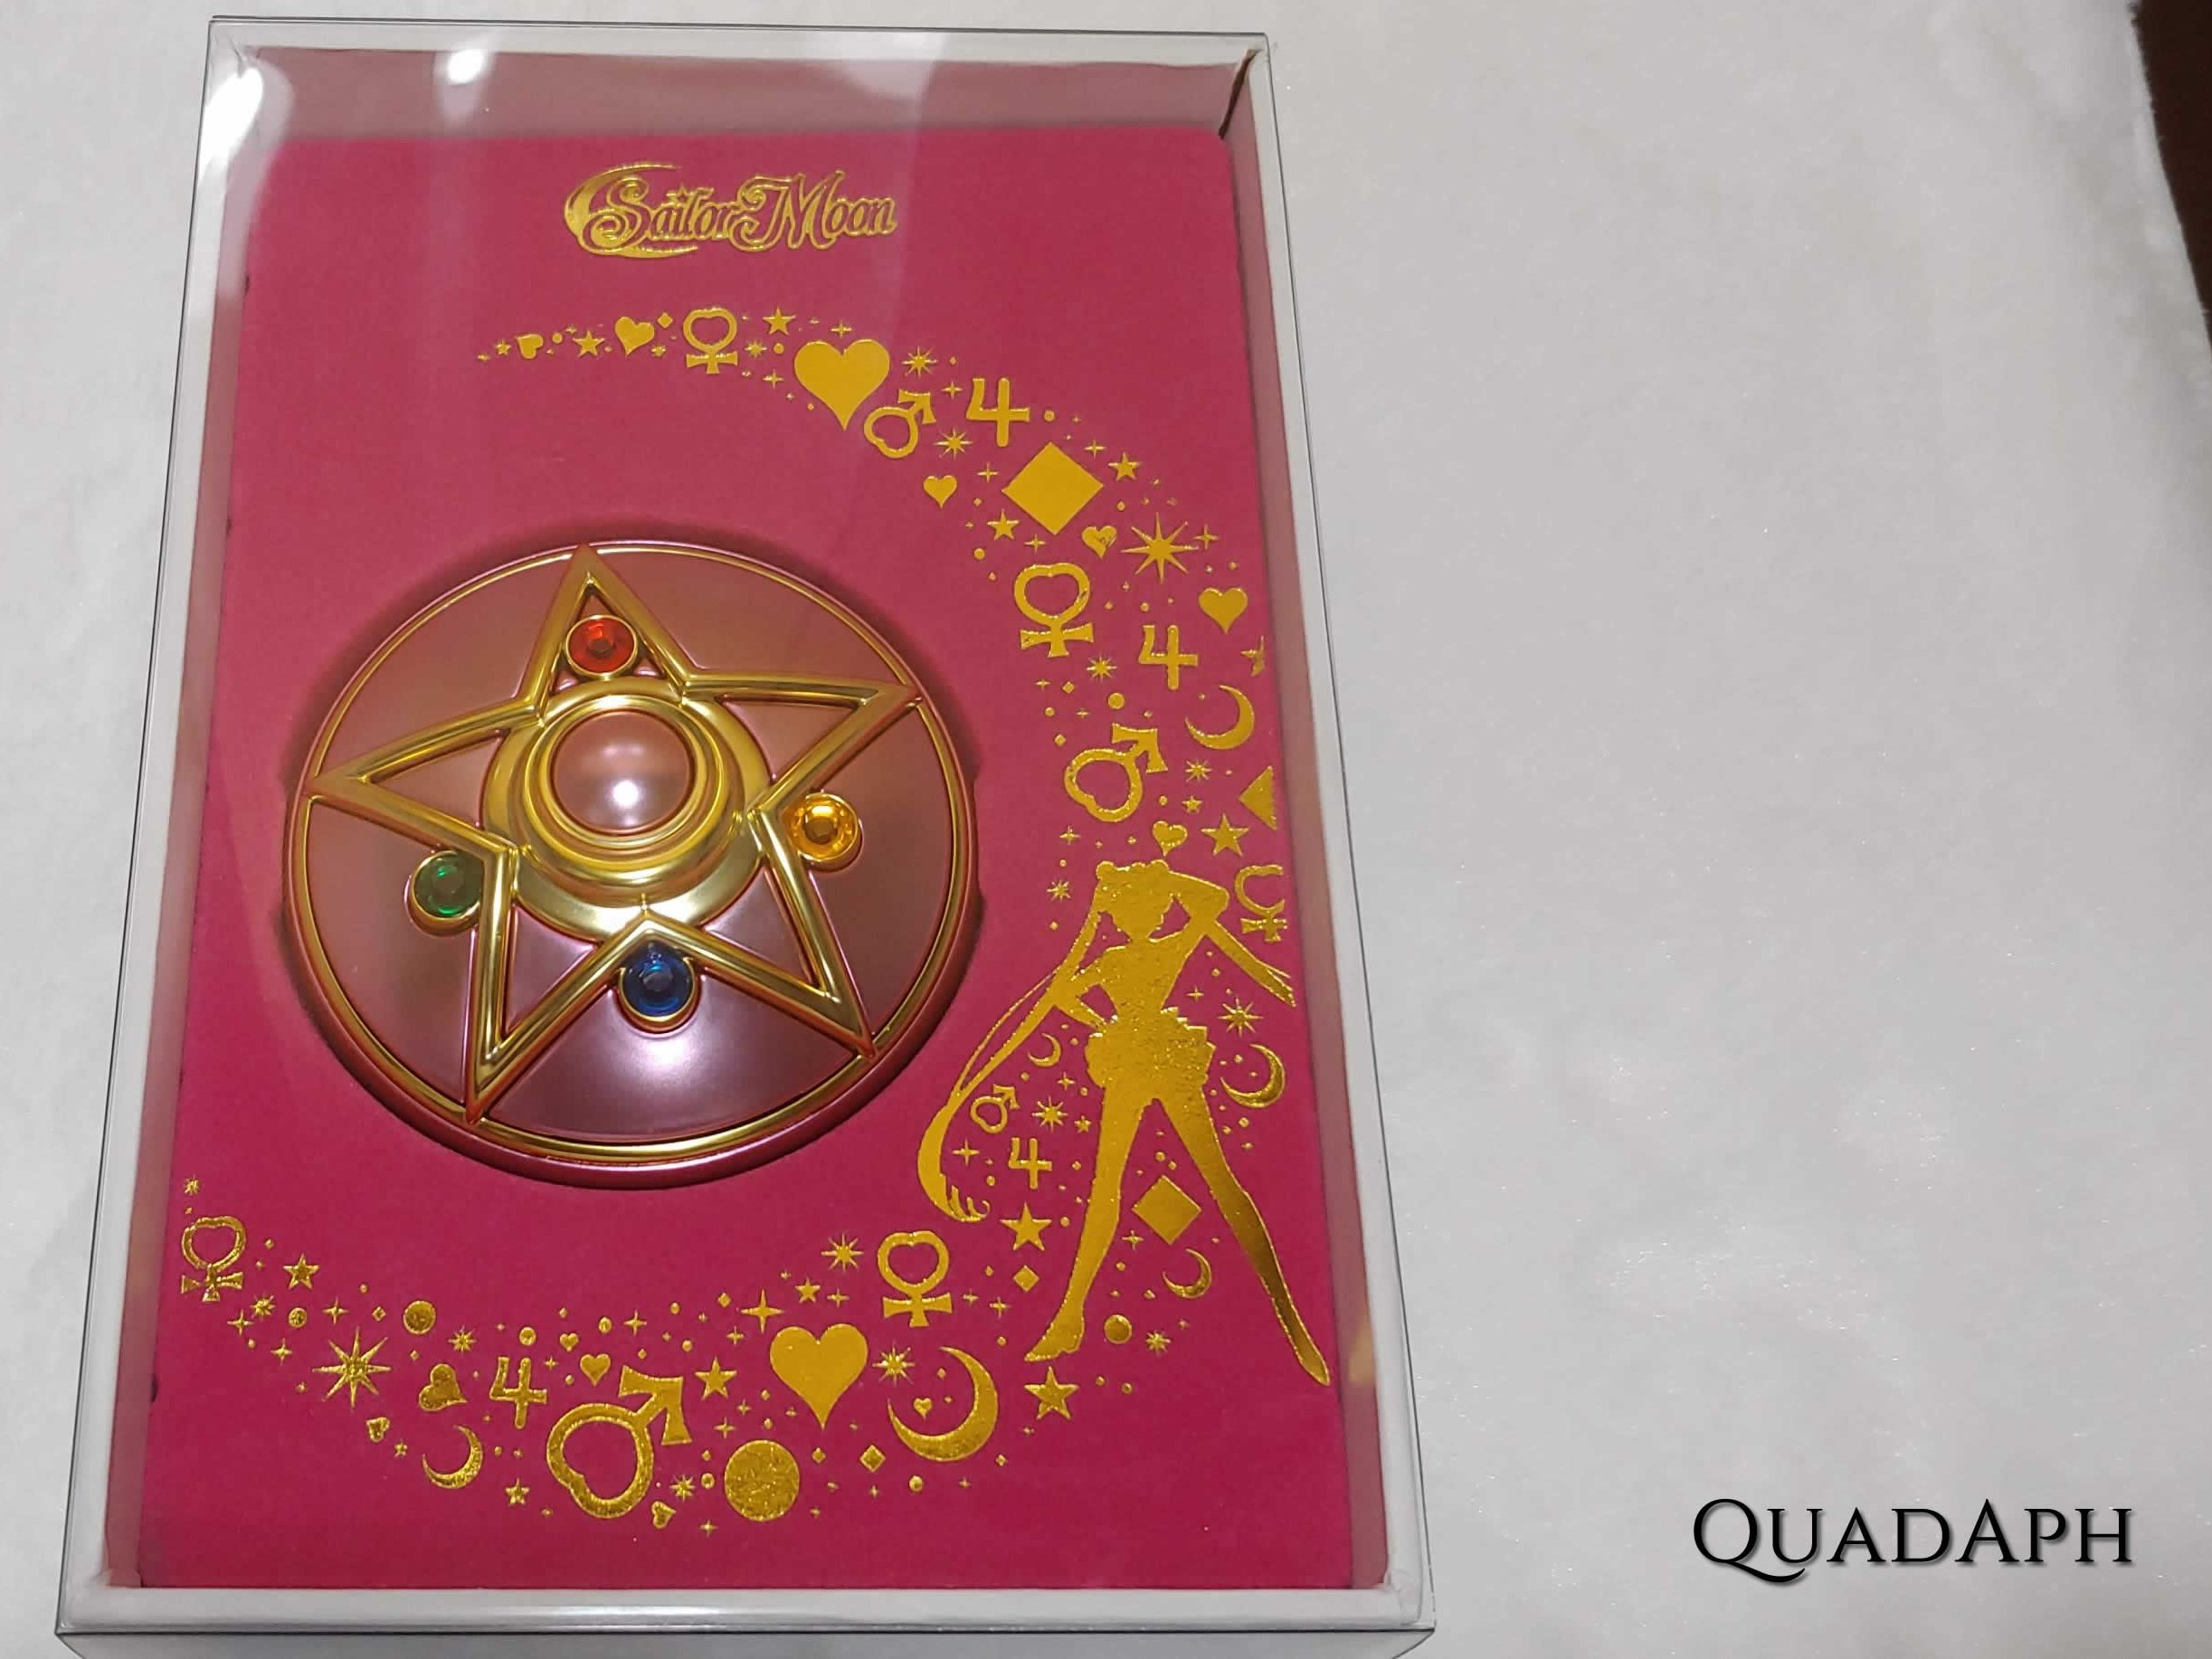 Sailormoon Portable Power Bank licensed by Toei